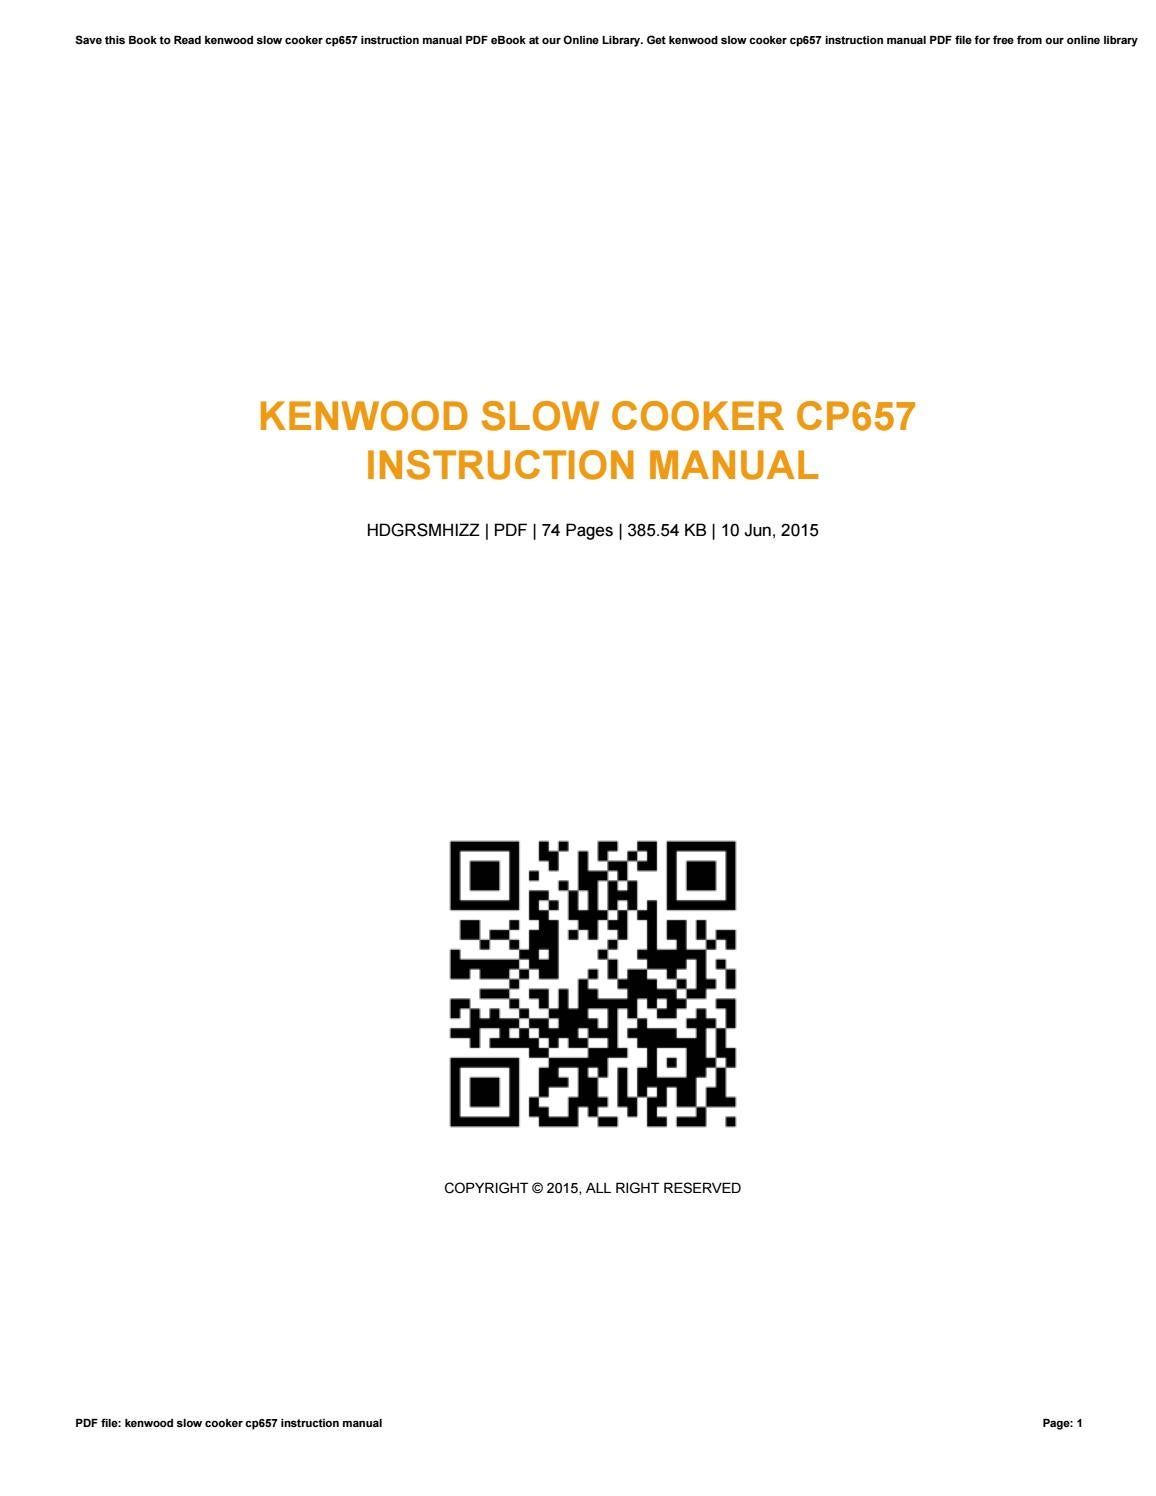 Kenwood slow cooker cp657 instruction manual by